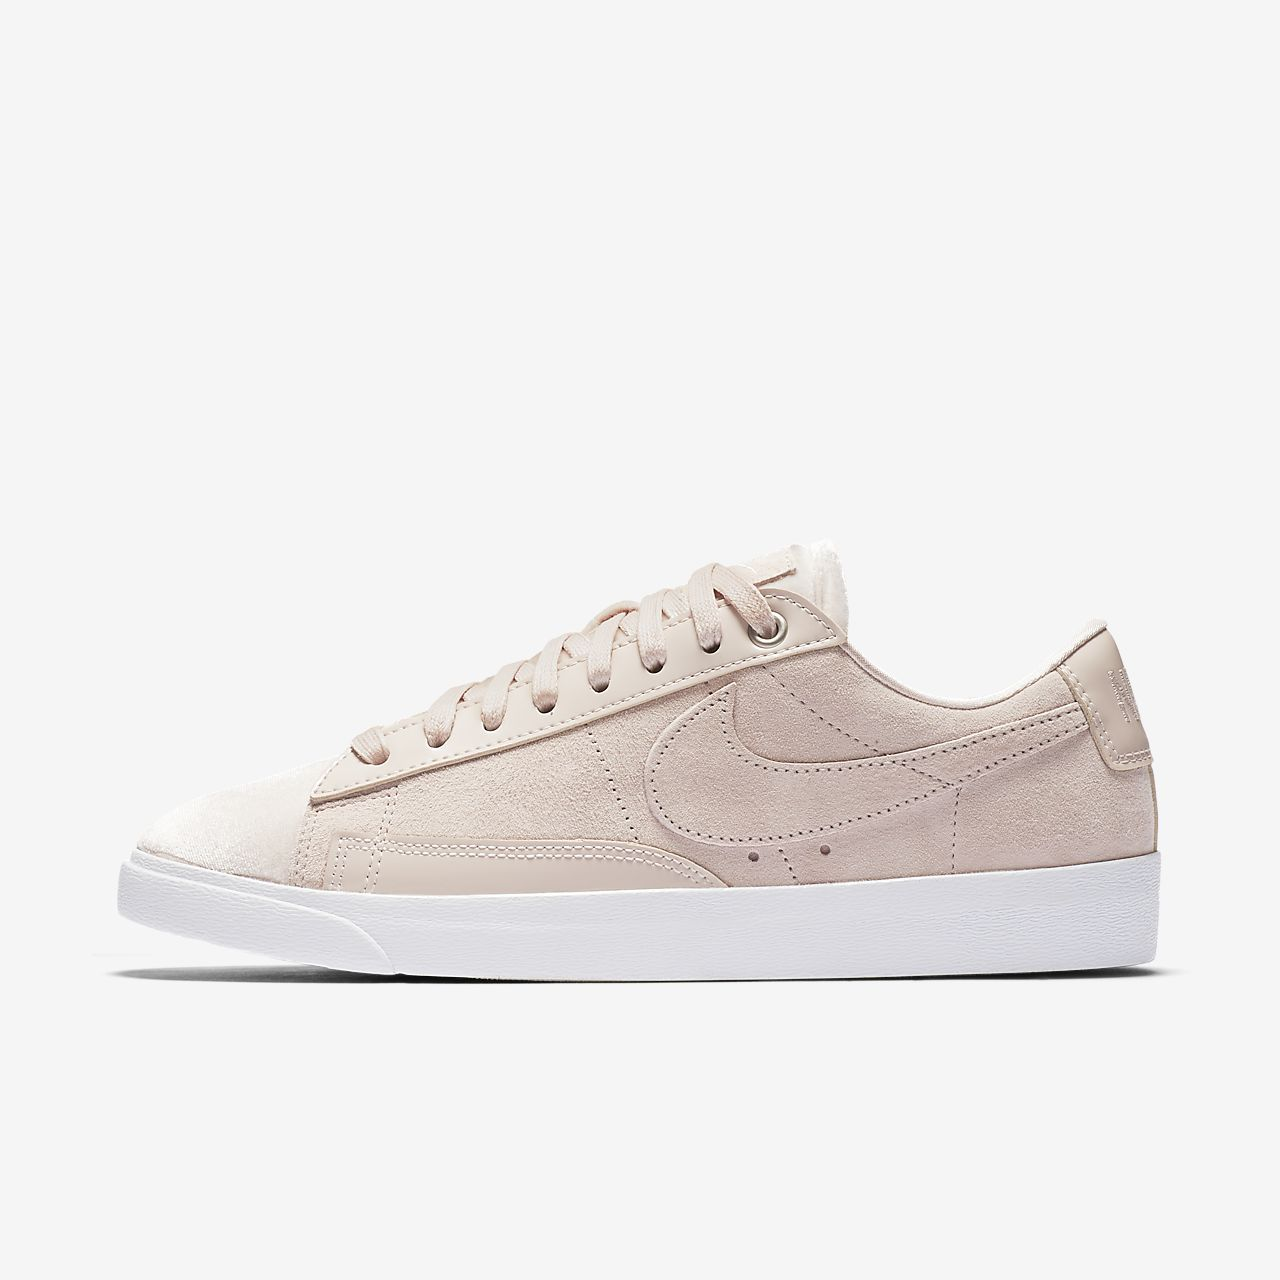 Nike Baskets basses Blazer Low LX Noir SPzN0n